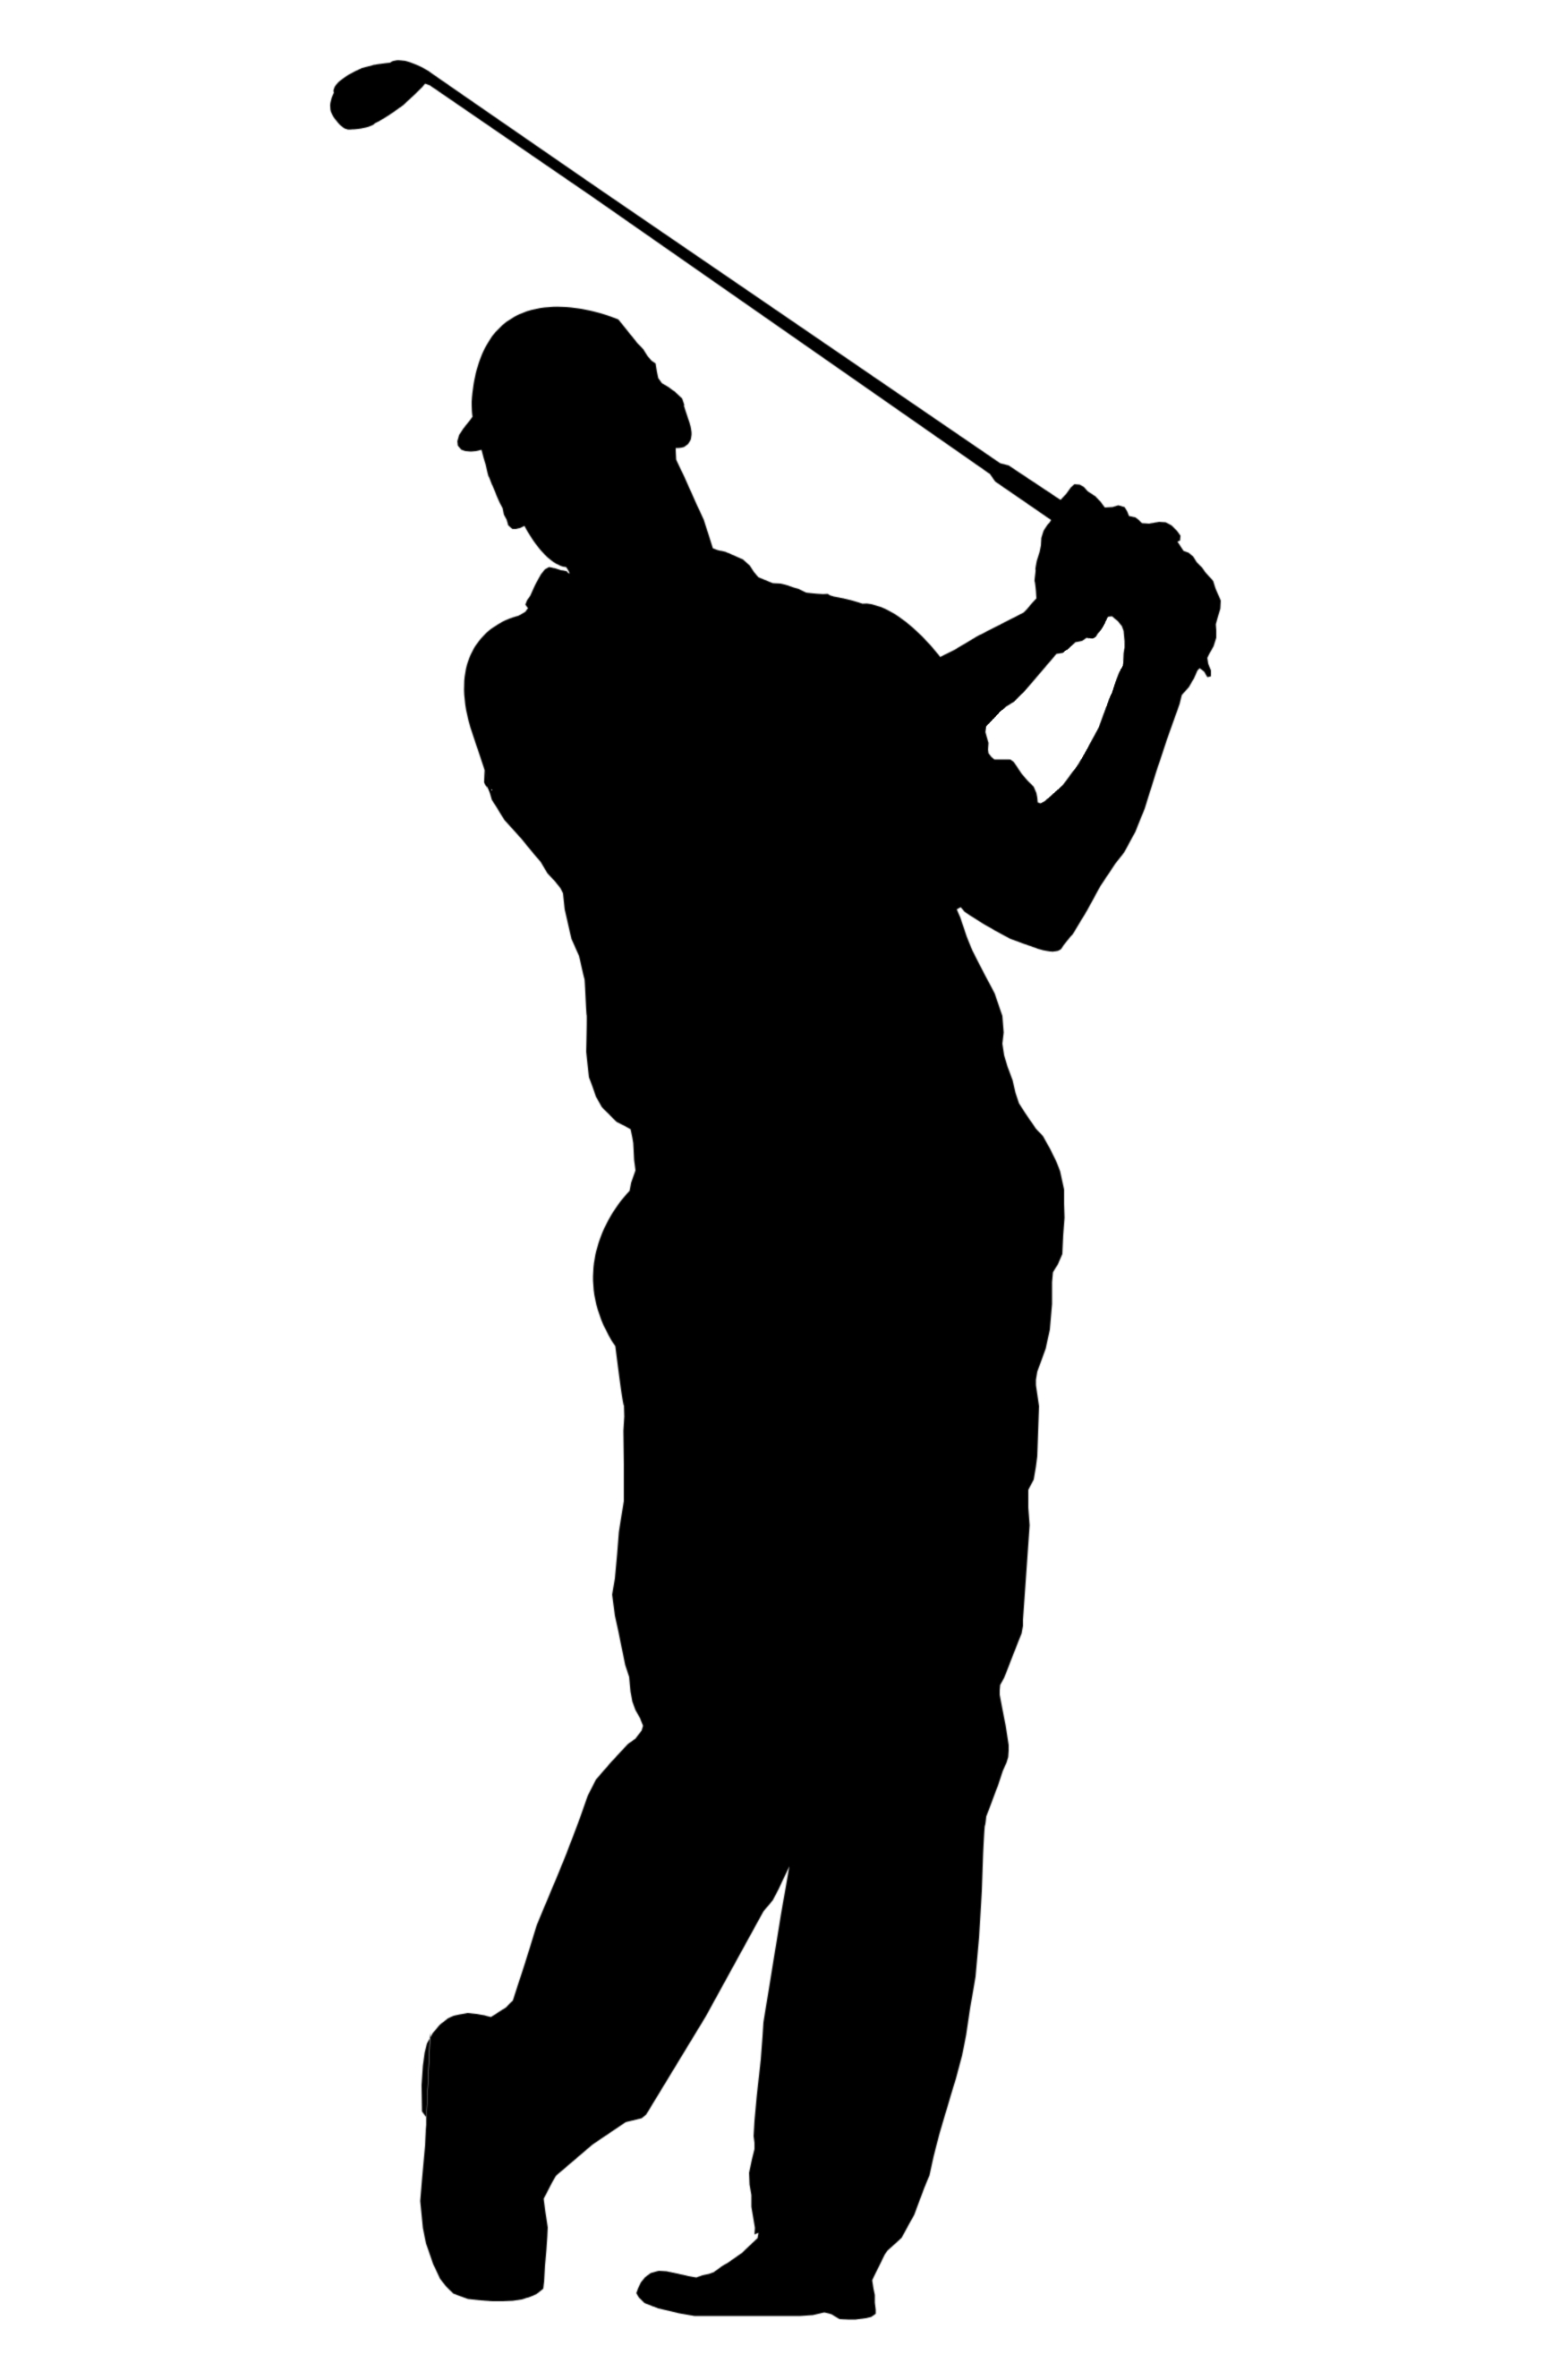 Free man cliparts download. Golfer clipart shadow